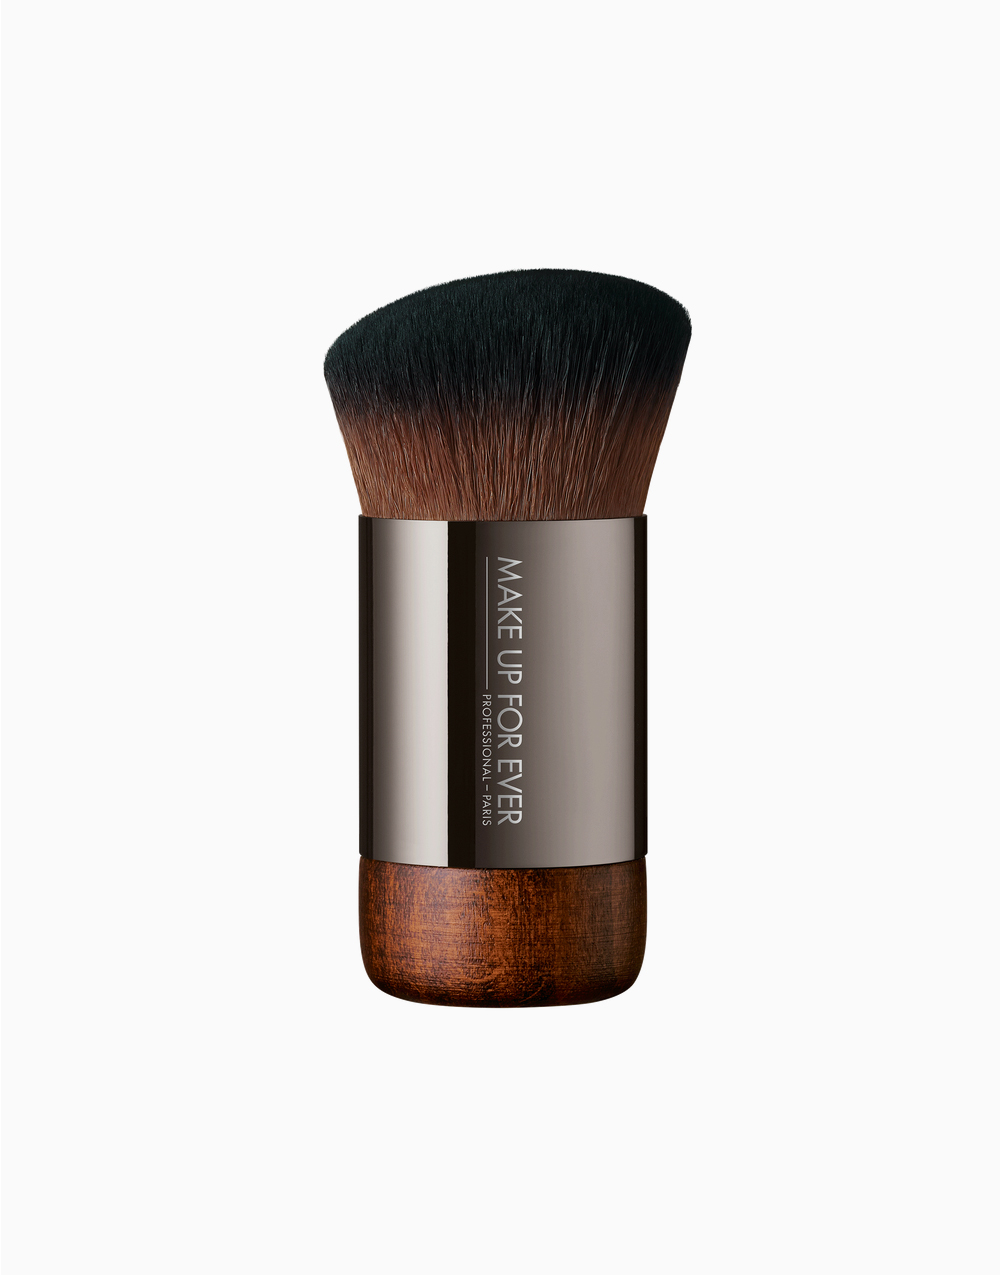 N112 Buffing Foundation Brush by Make Up For Ever